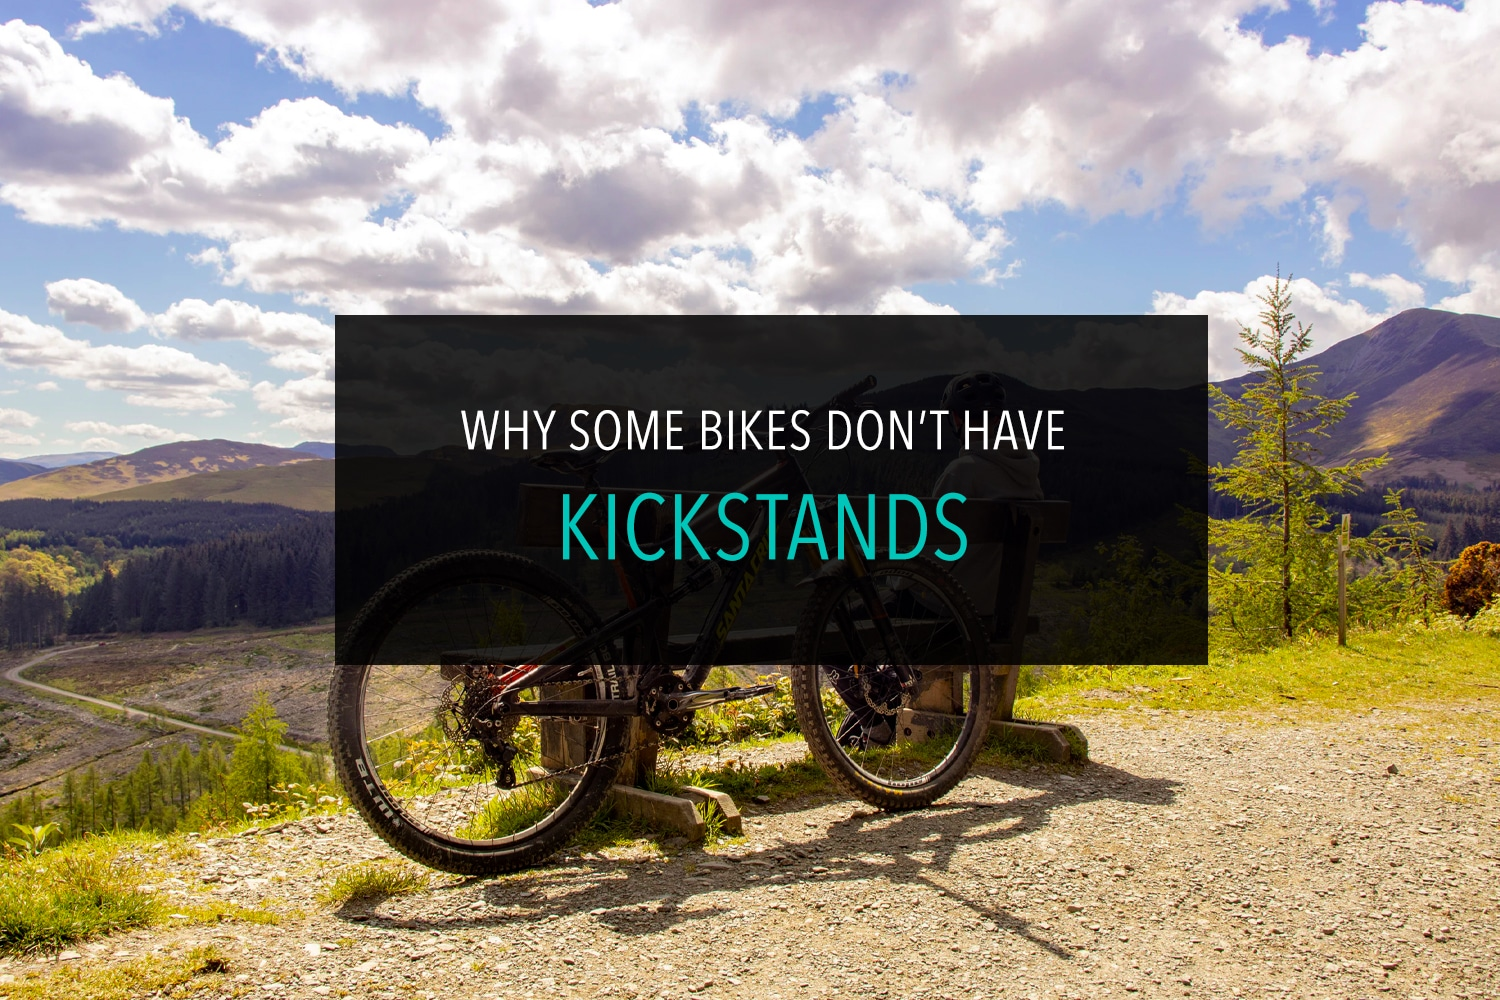 Why some bikes dont have kickstands